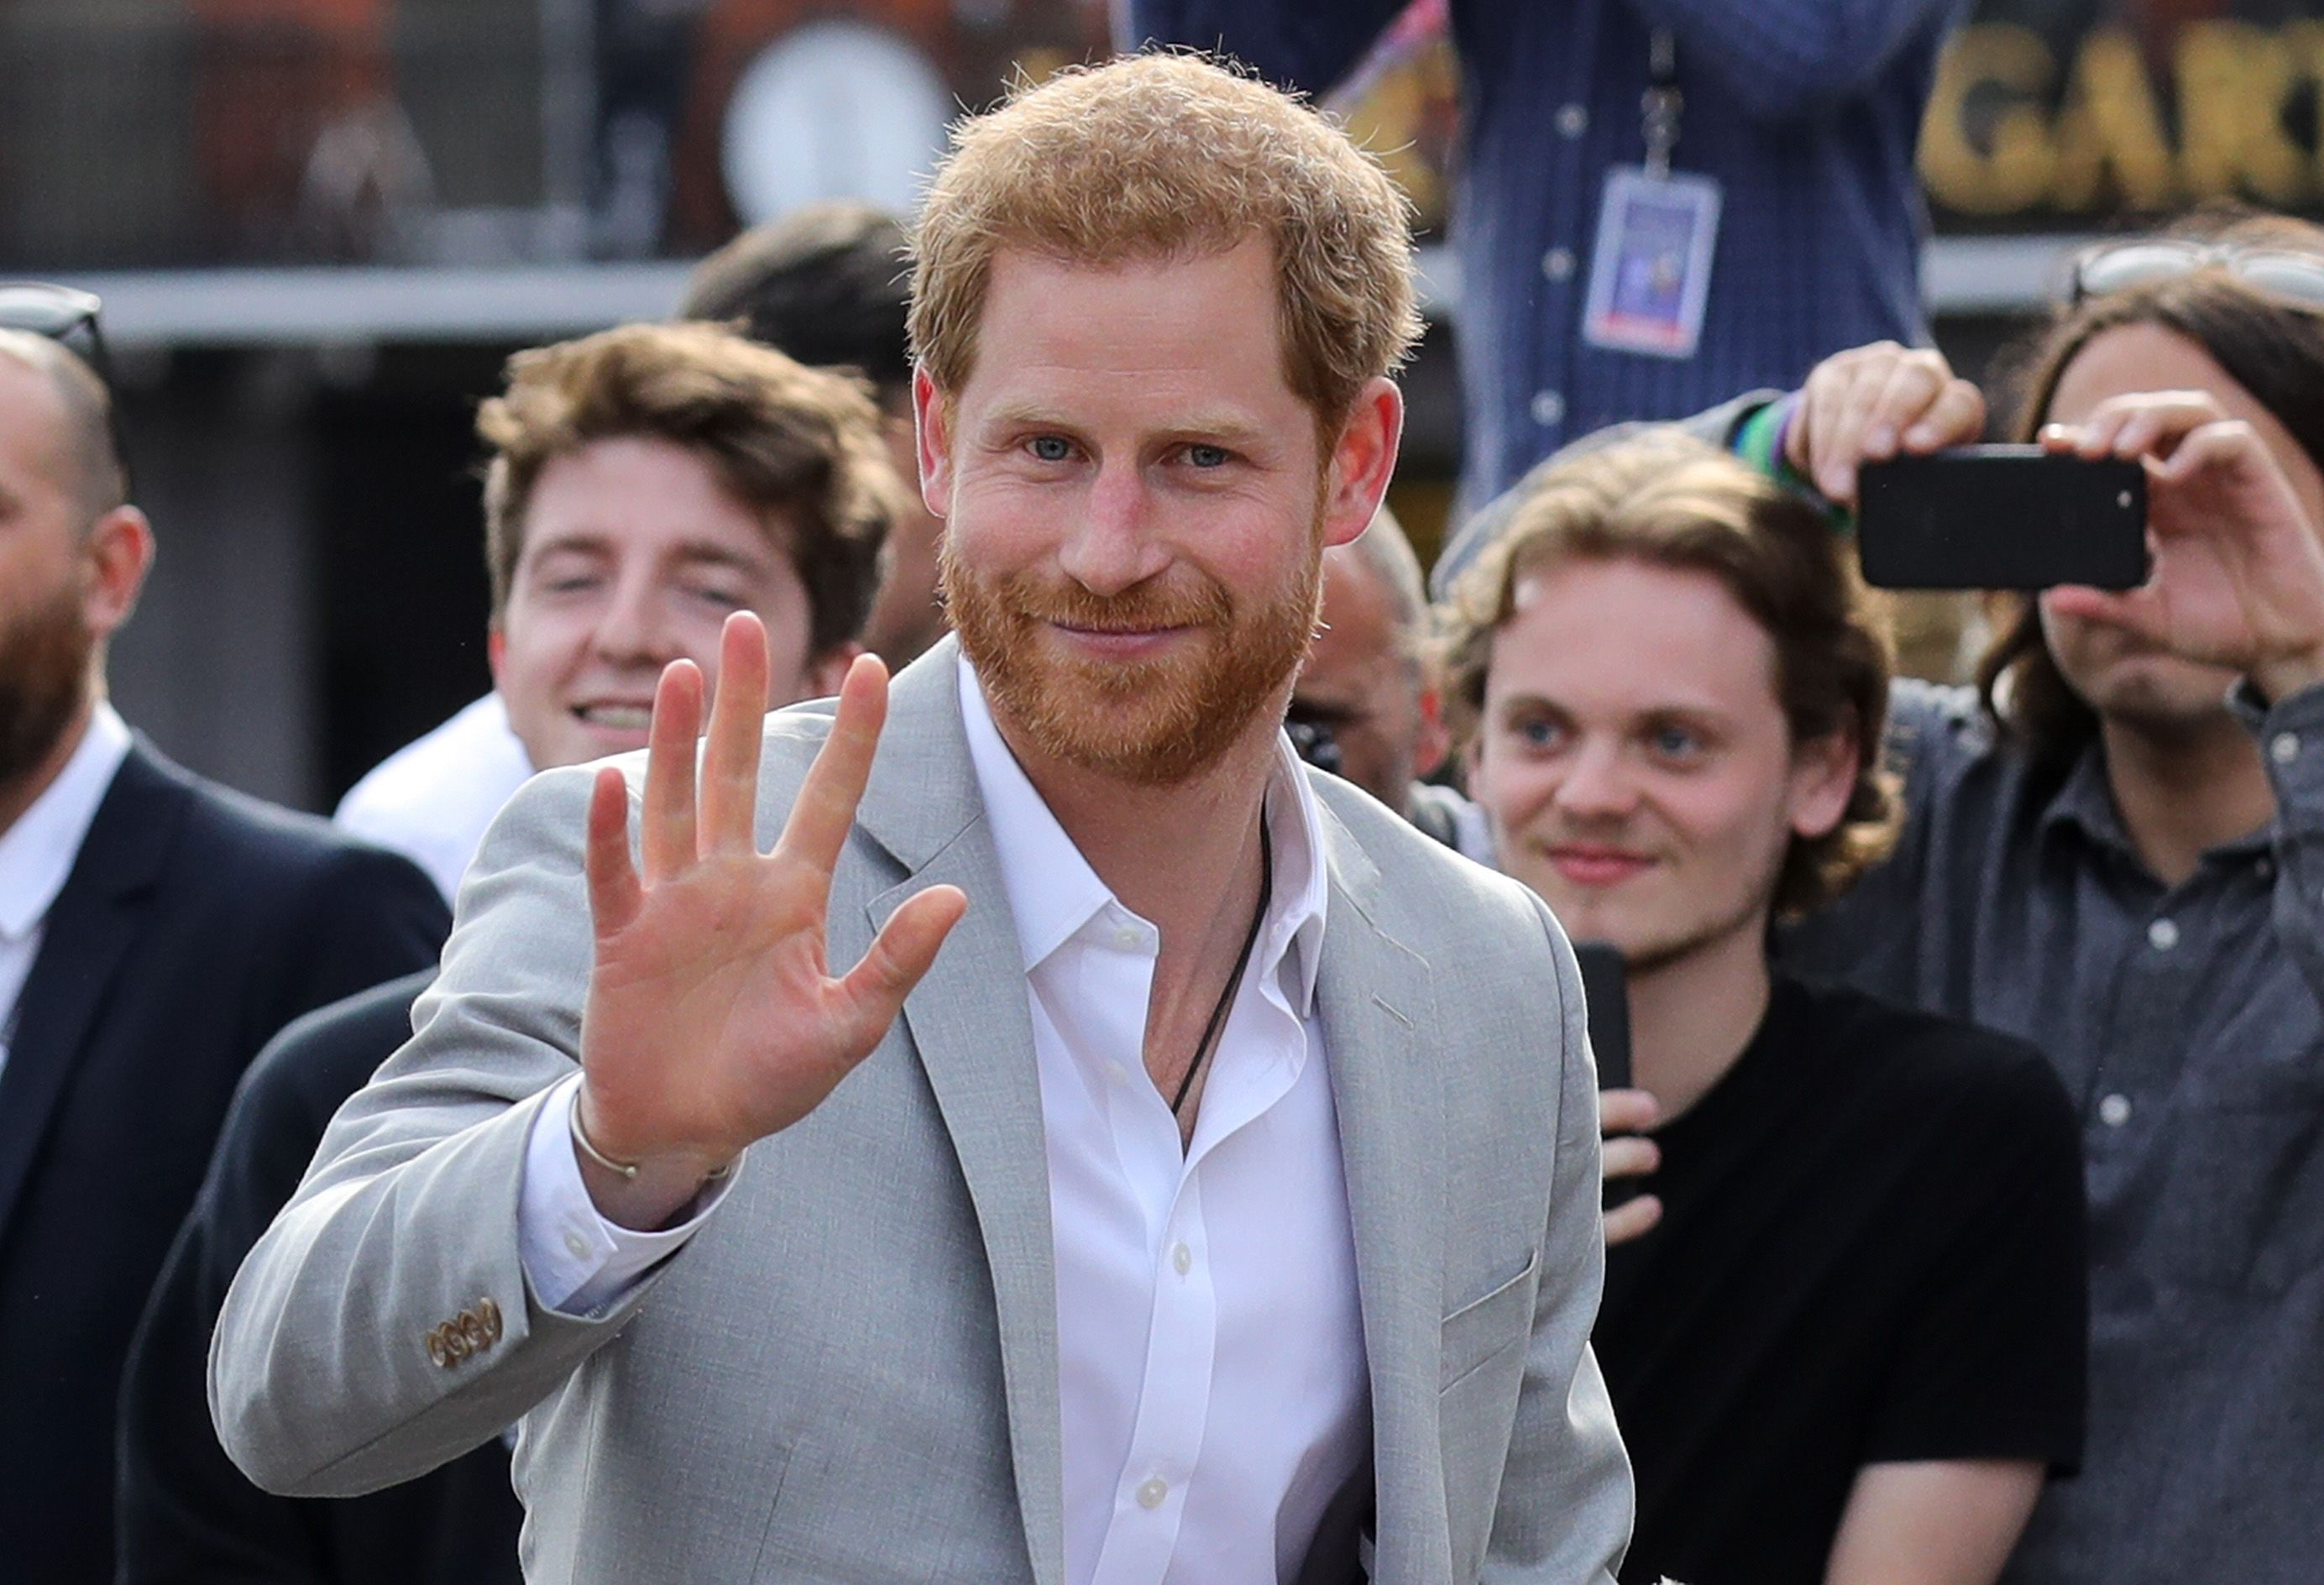 Prince Harry Just Gave the Most Adorable Baby Archie Update